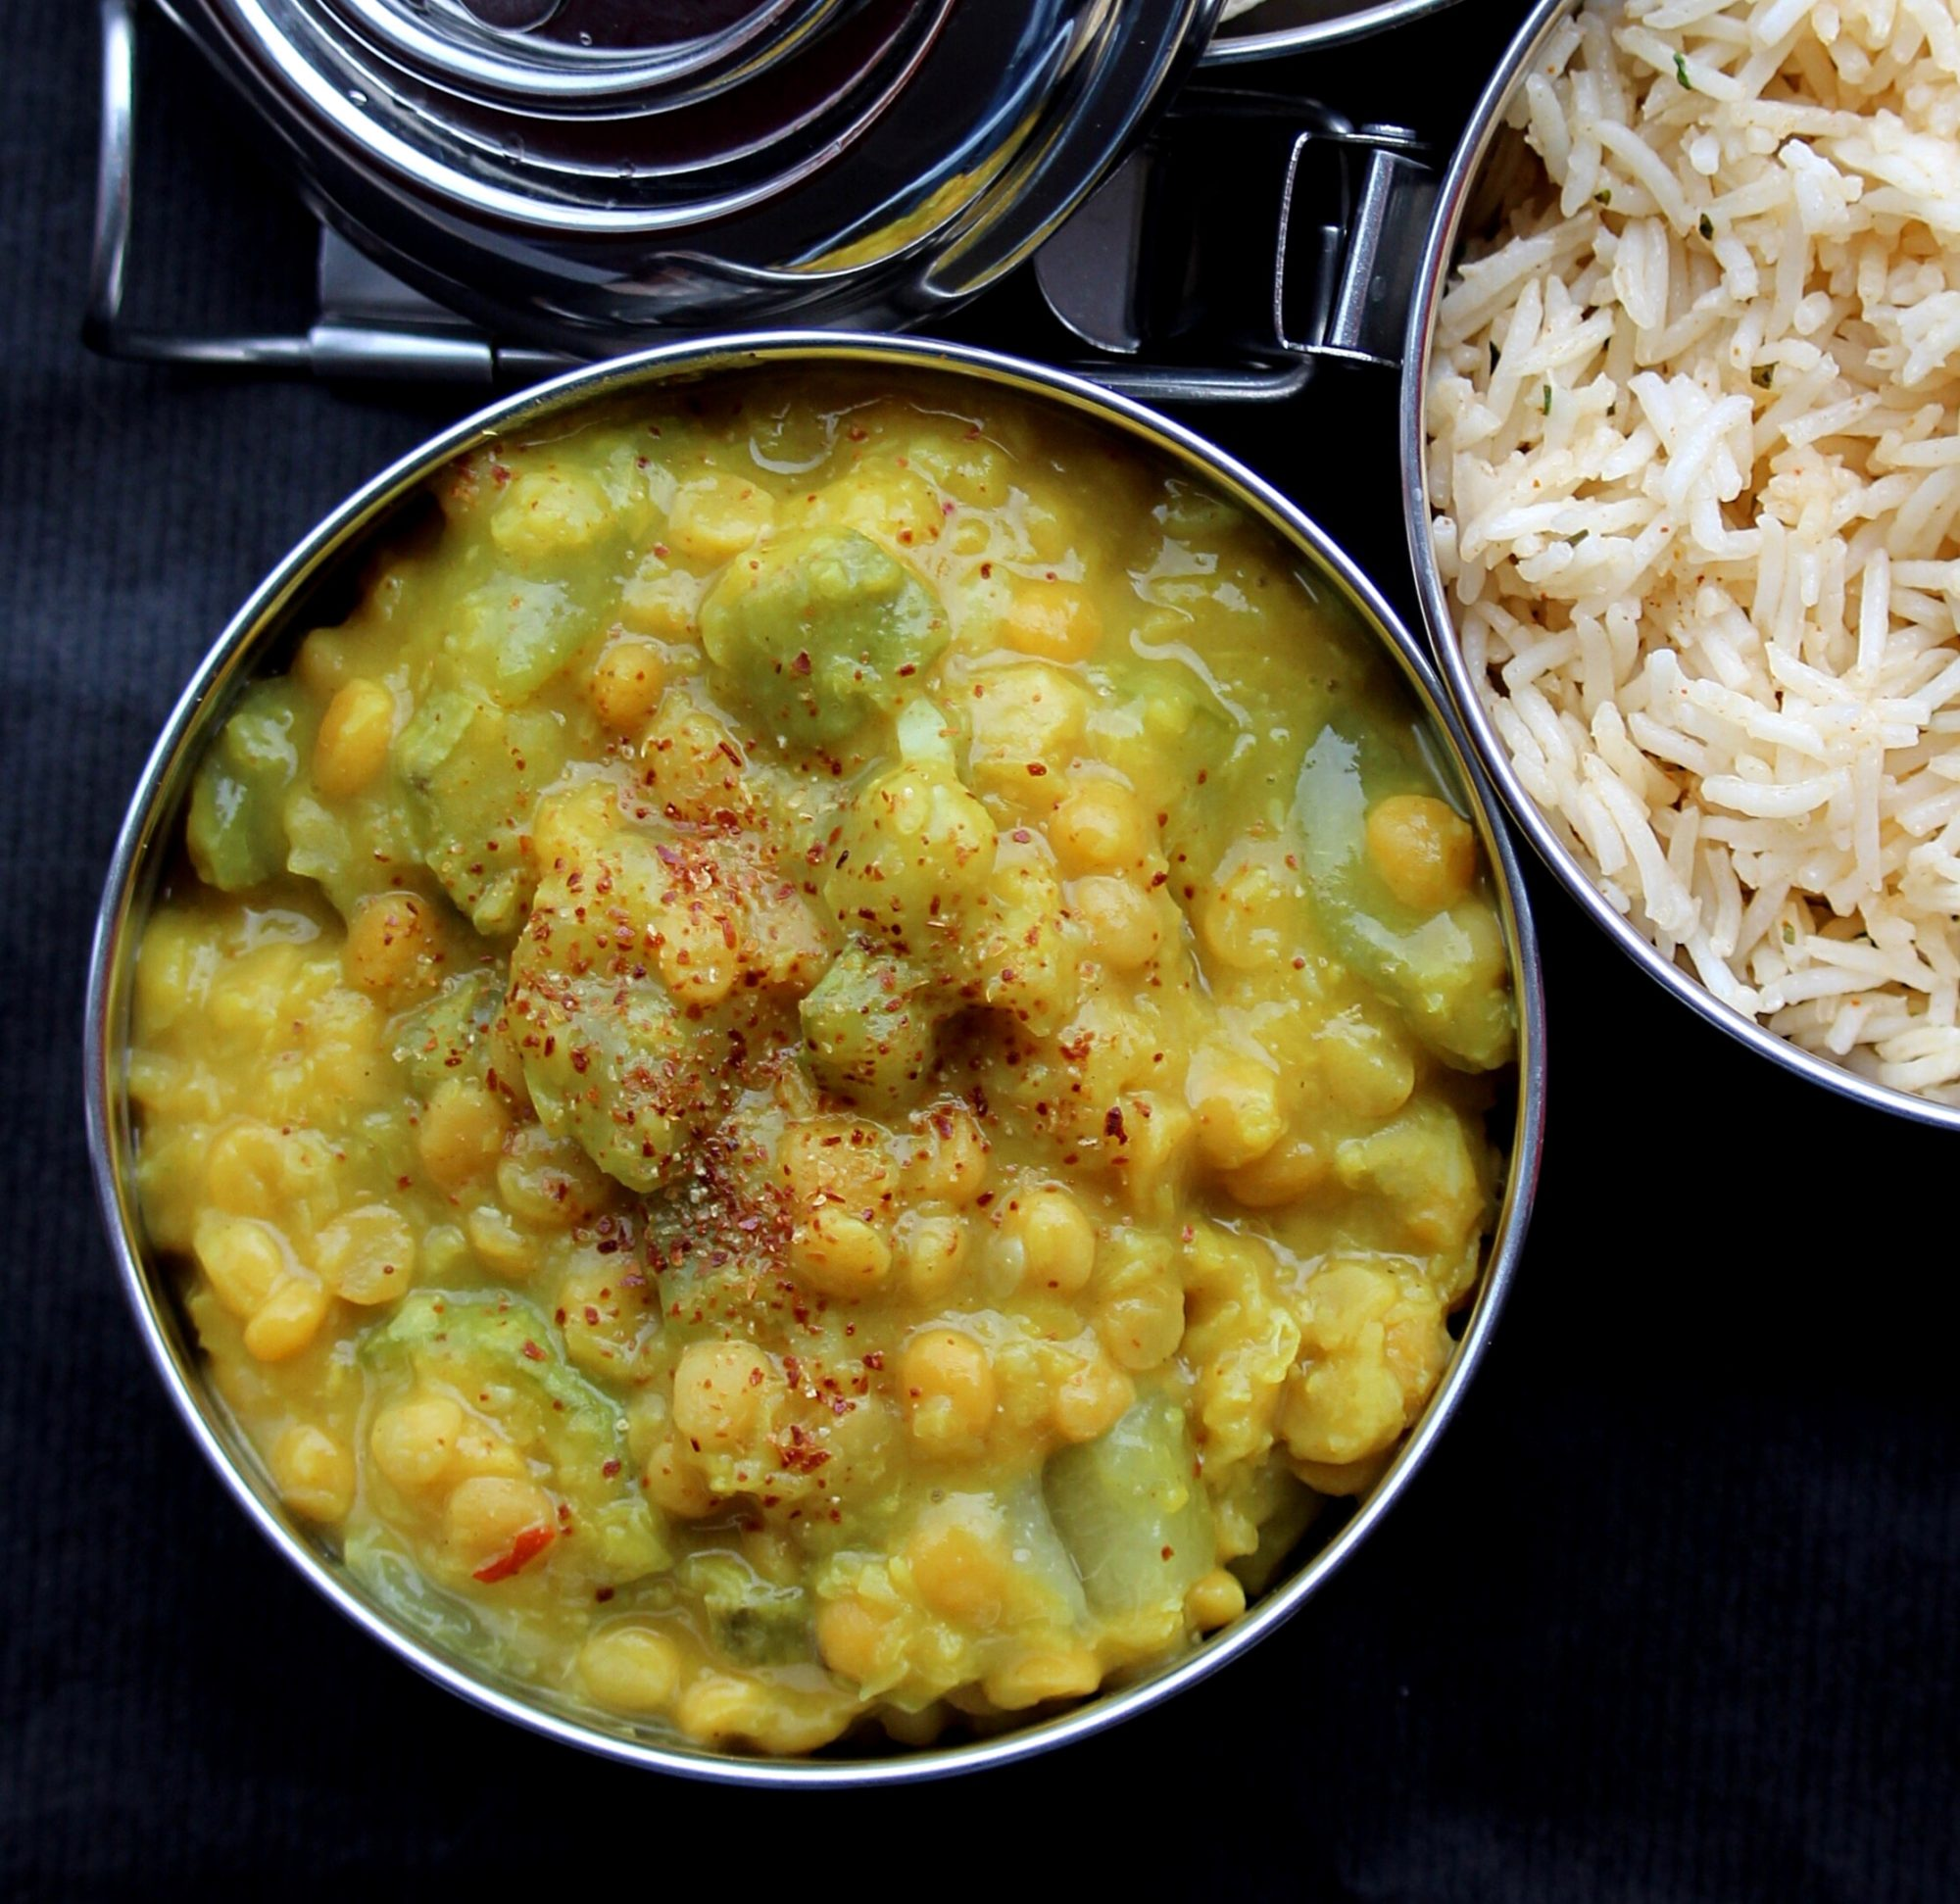 chickpeas with rice on the side